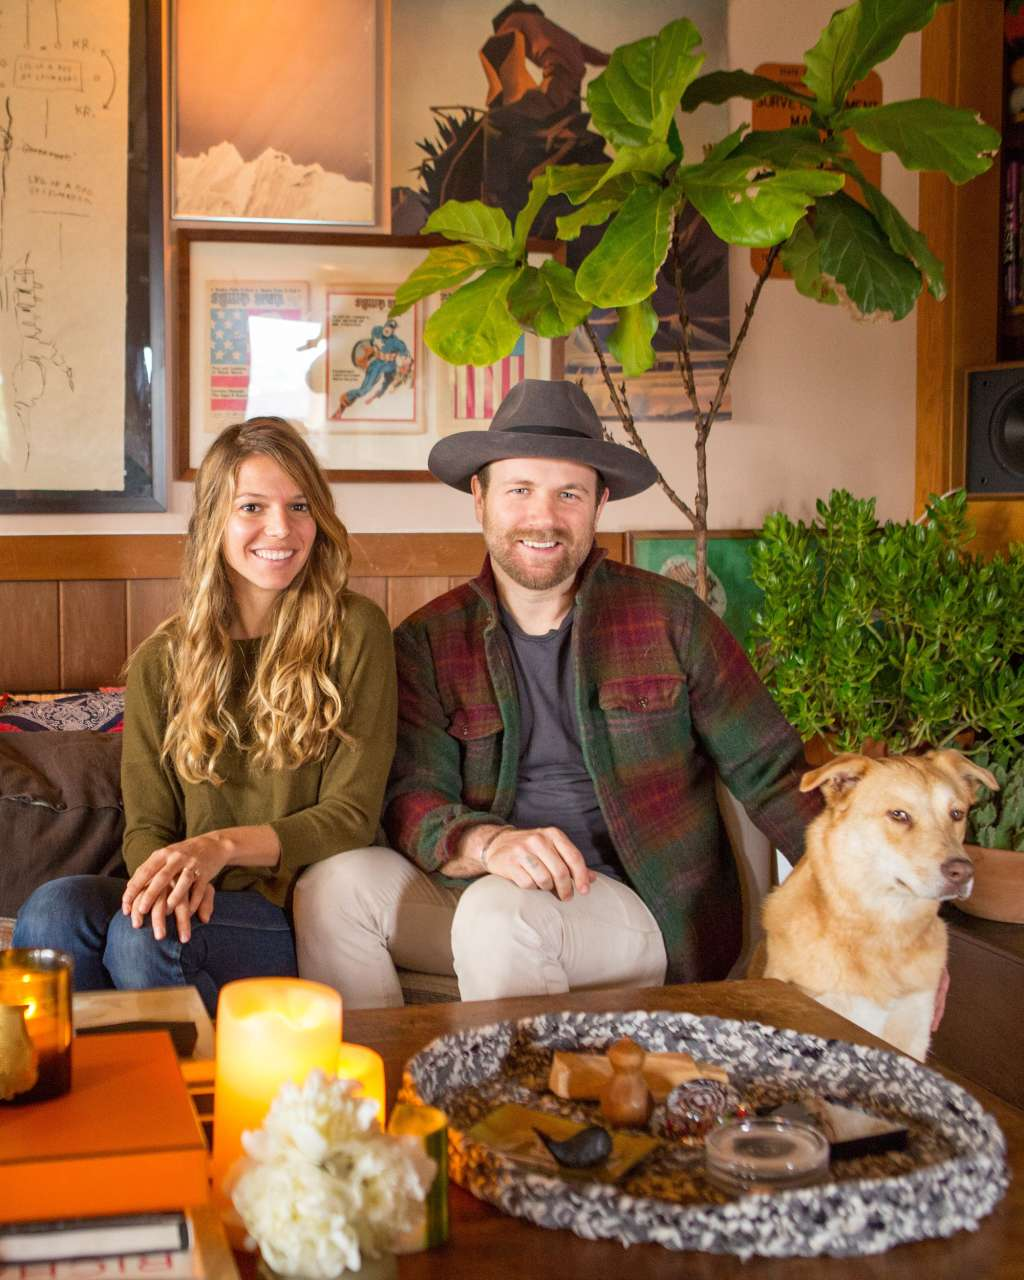 House Tour: A Warm and Woodsy California Home